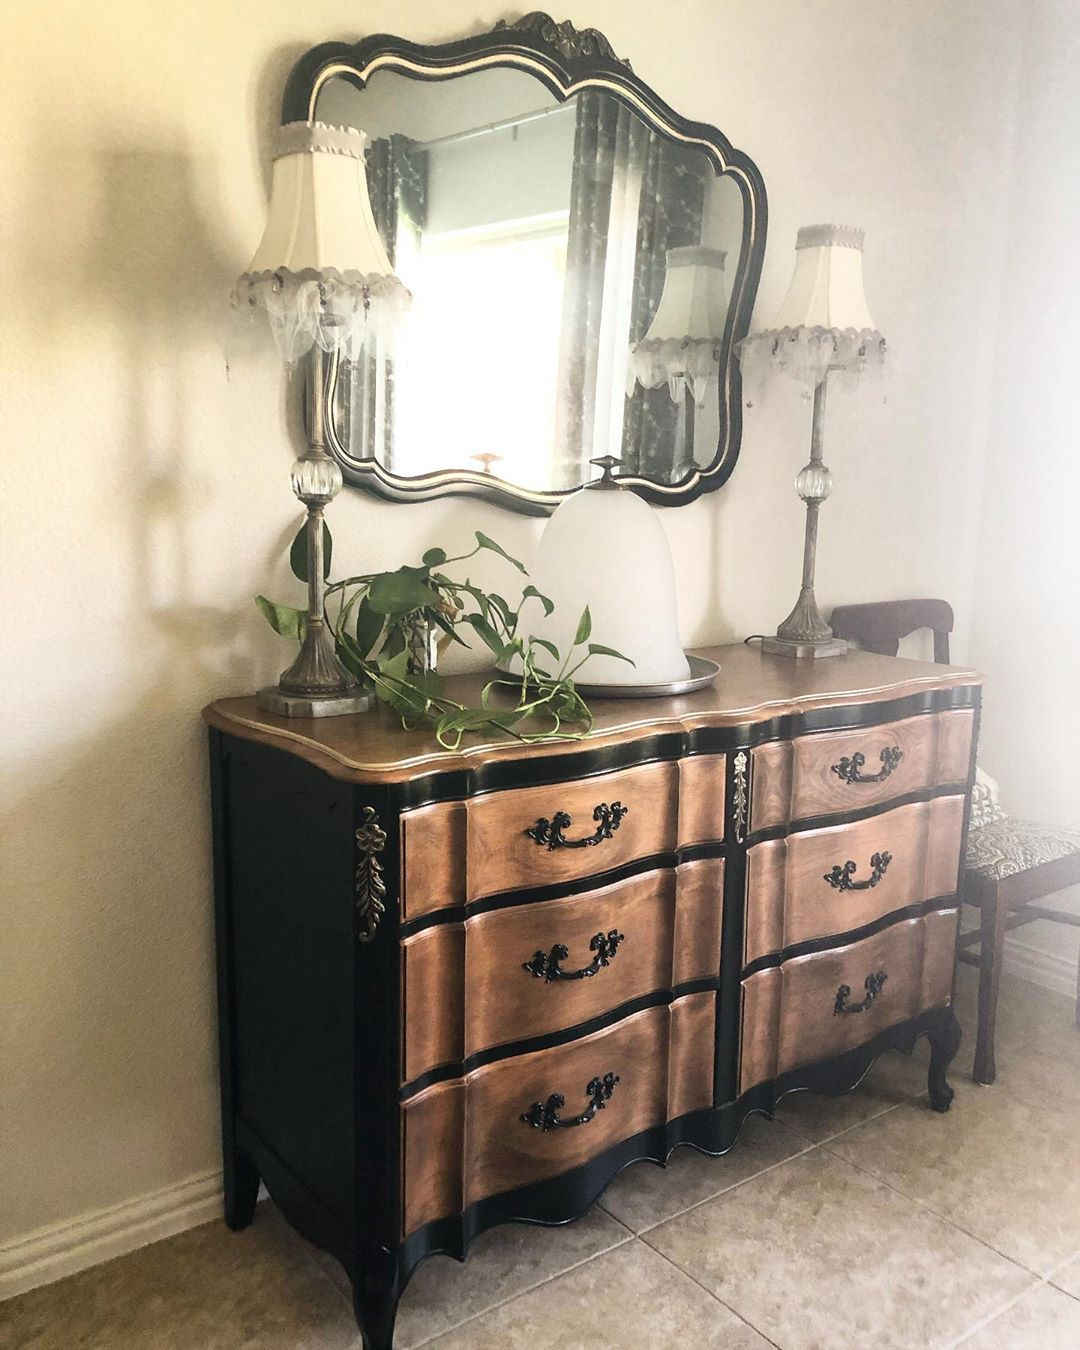 Here Is The Full View Of The French Provincial Dresser Makeover